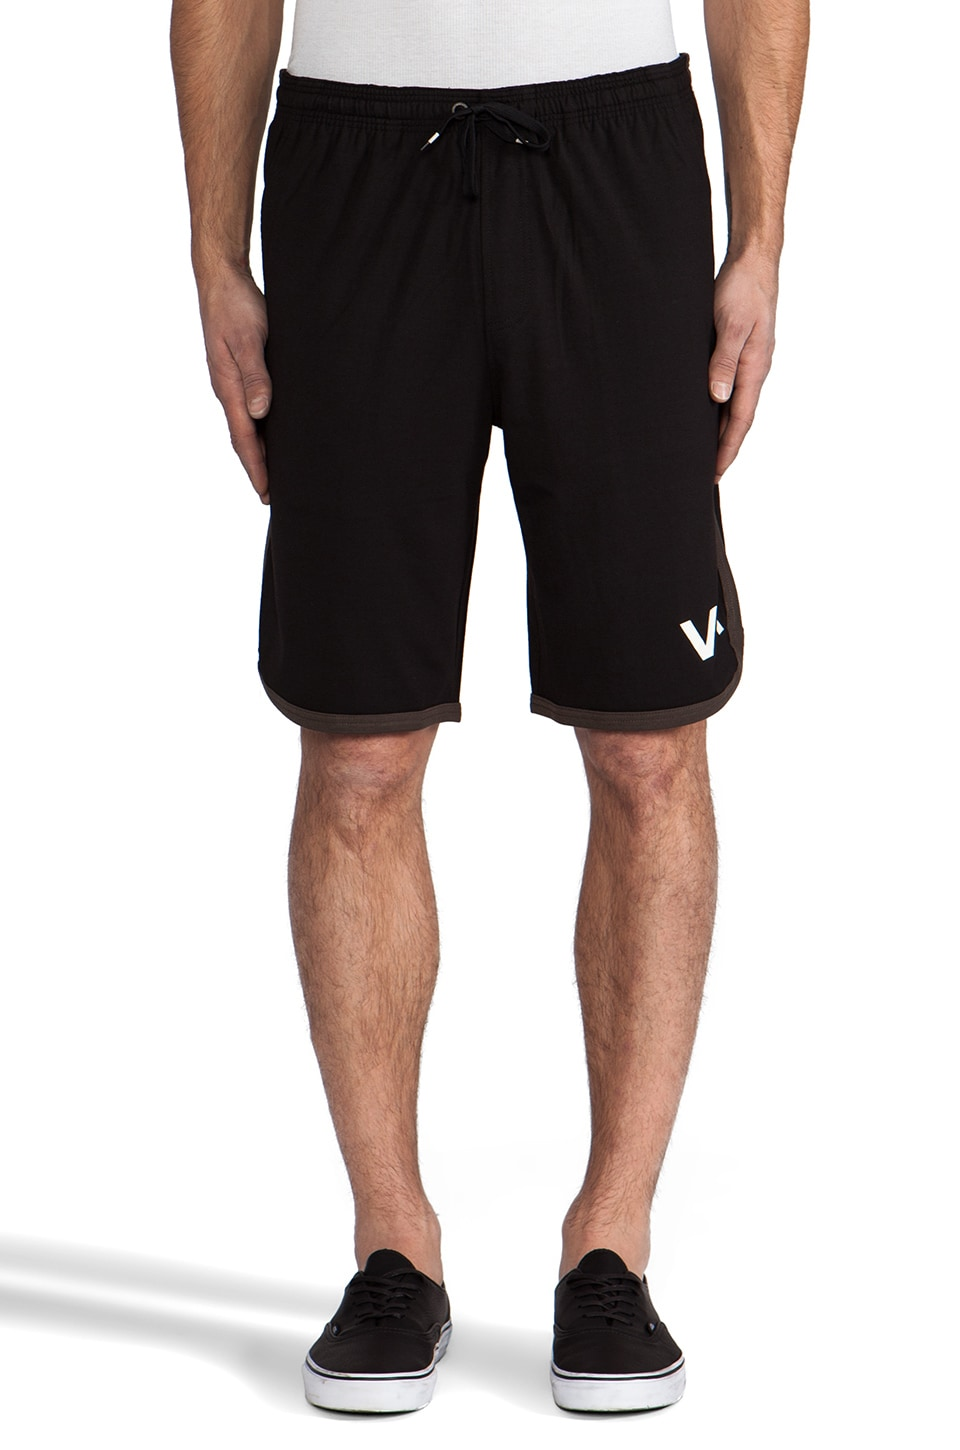 RVCA VA Sport Short in Black/Dark Gray